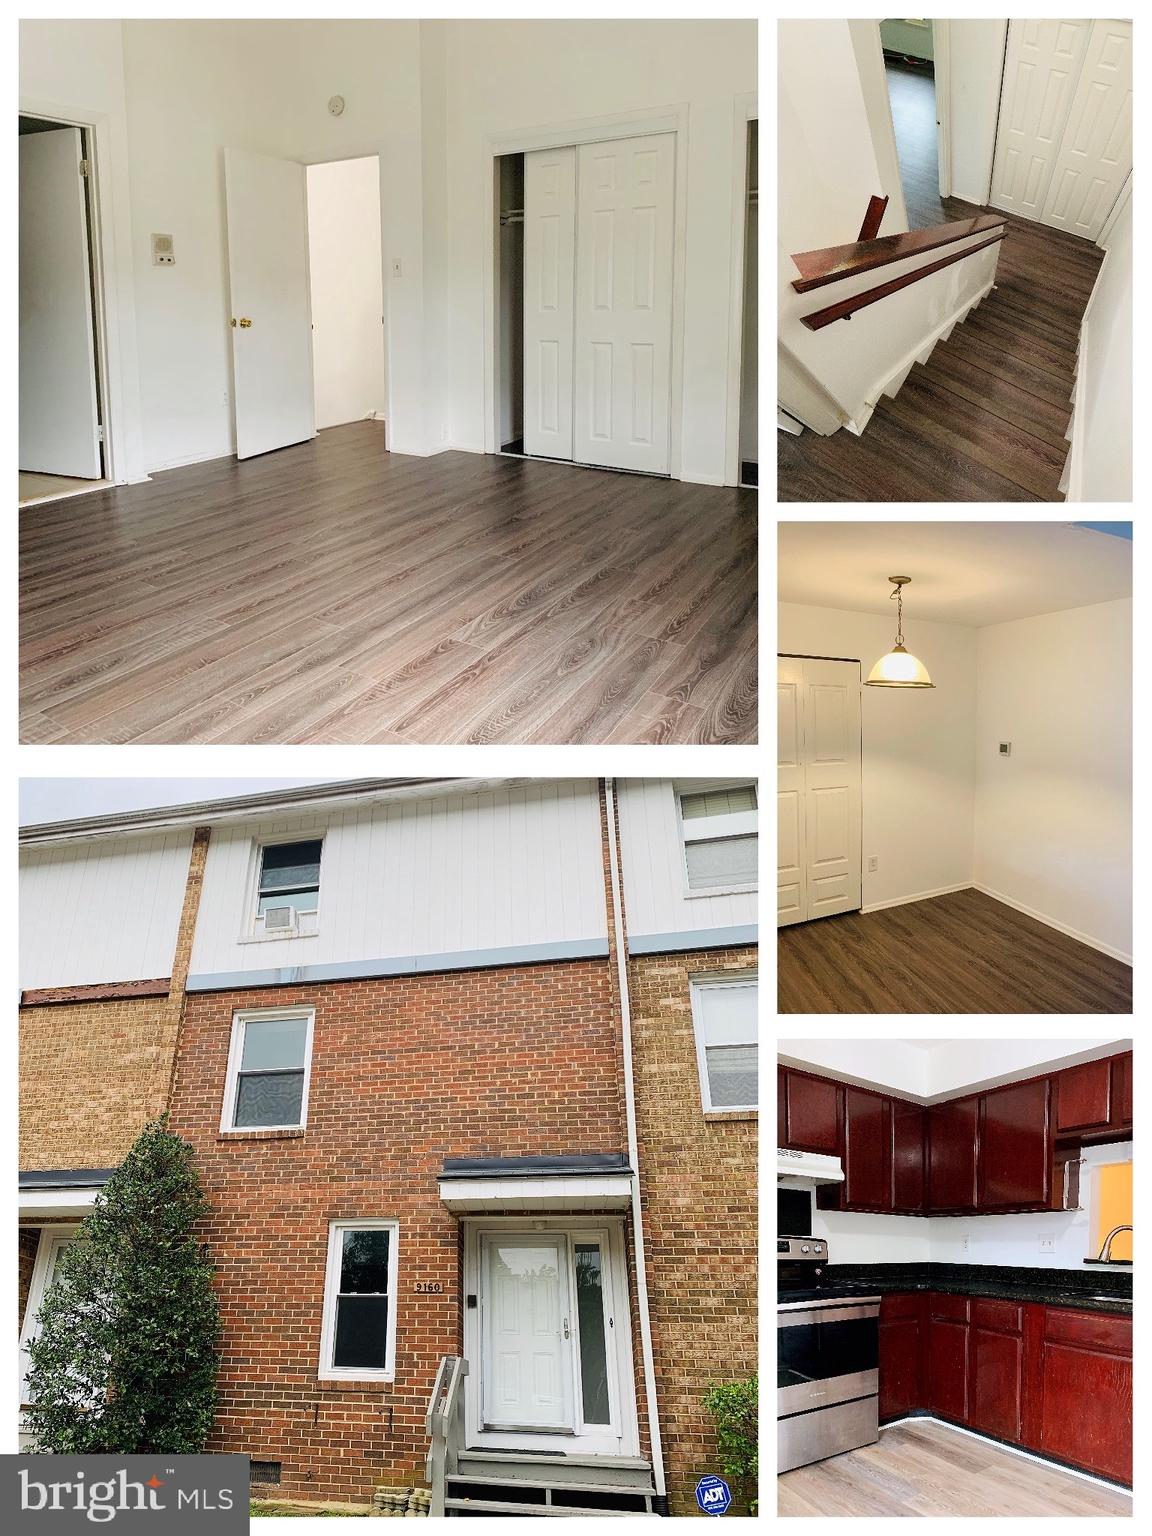 Move-in ready. Large Five Level Townhouse!Hardwood Floors. Gourmet kitchen with table space. Separat